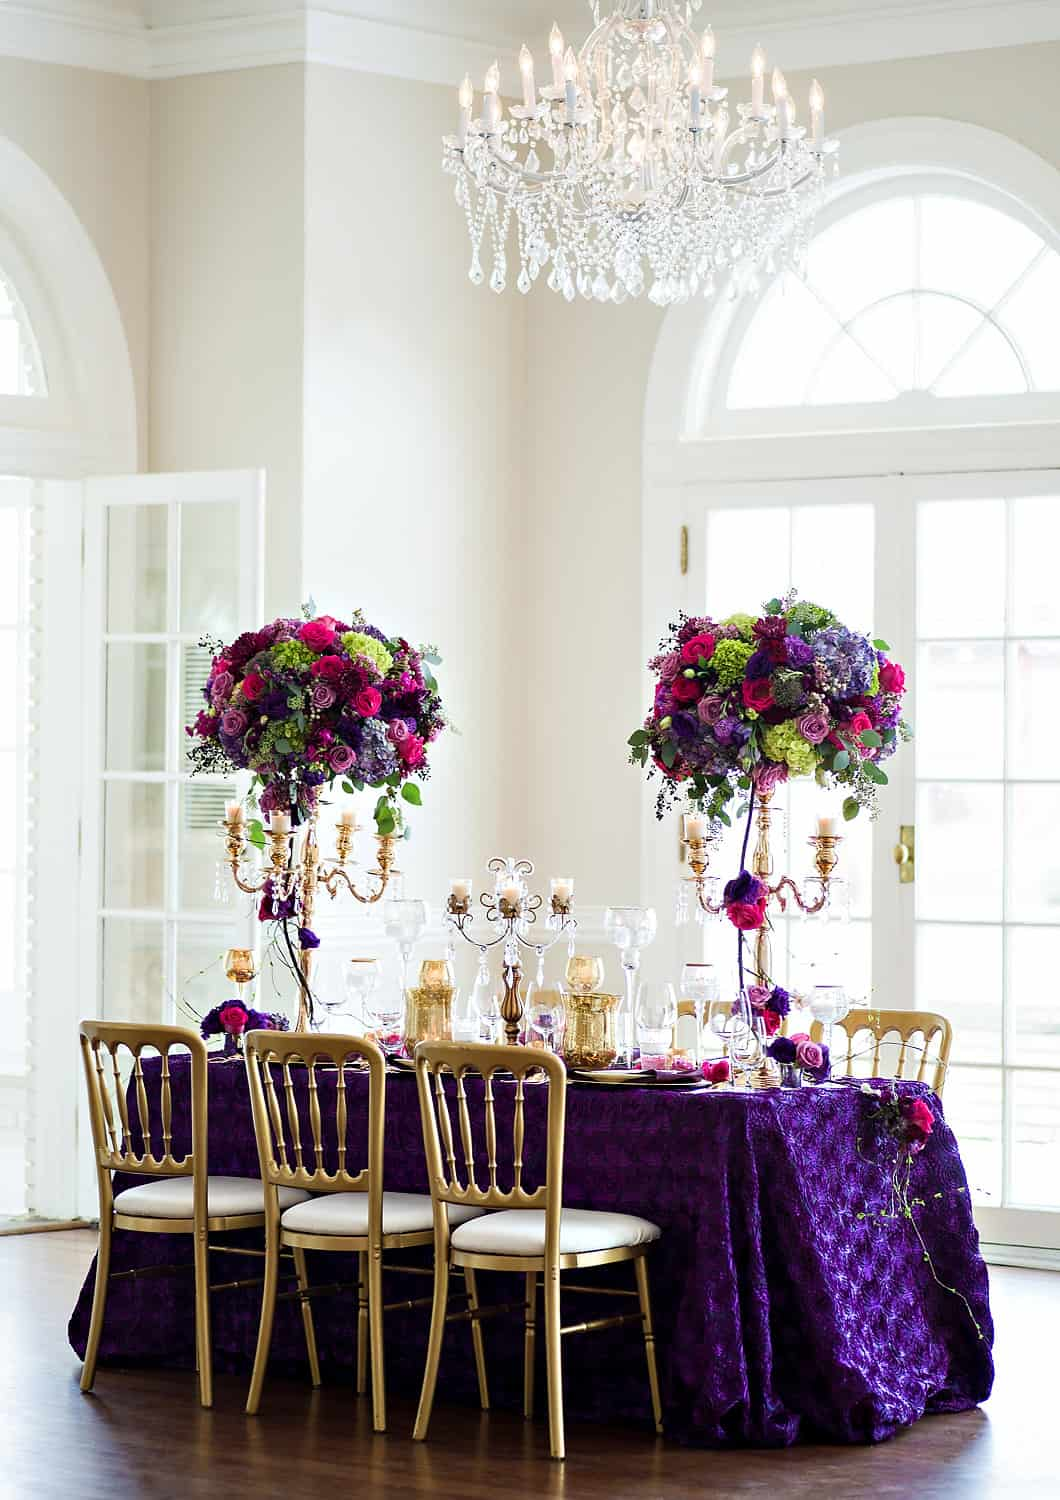 Separk Mansion wedding u2013 purple gold table setting : ala carte table setting - pezcame.com